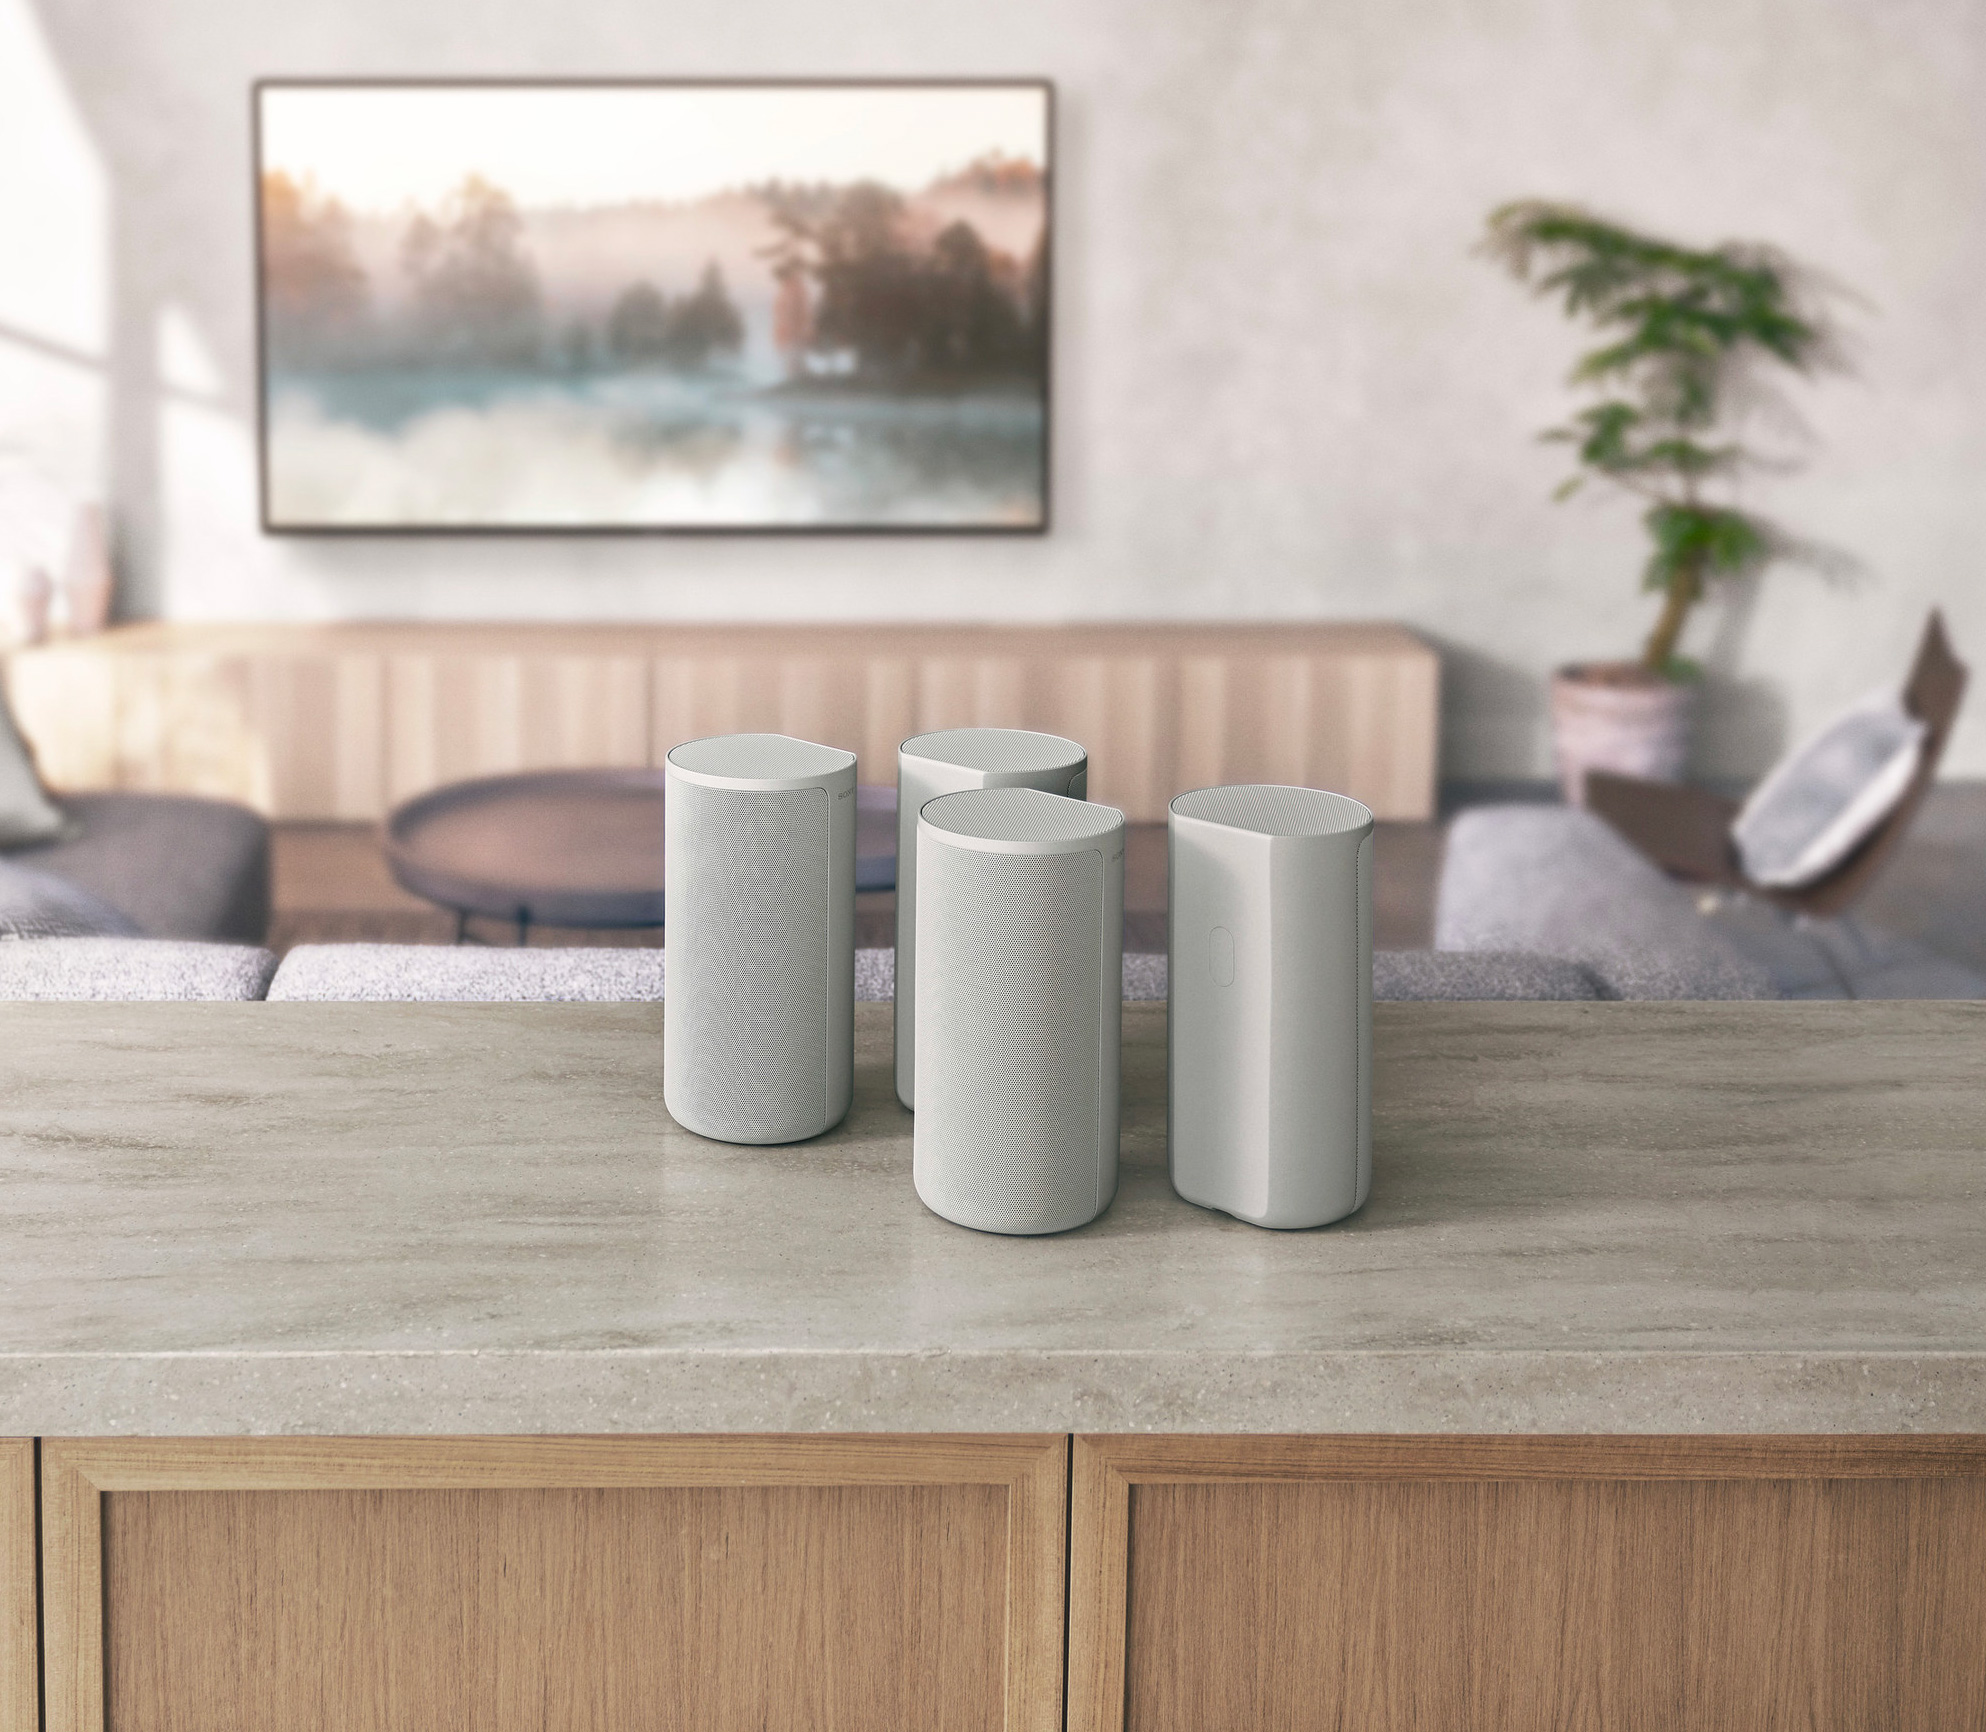 Sony Adds Atmos to HT-A9 Multi-Speaker System at werd.com